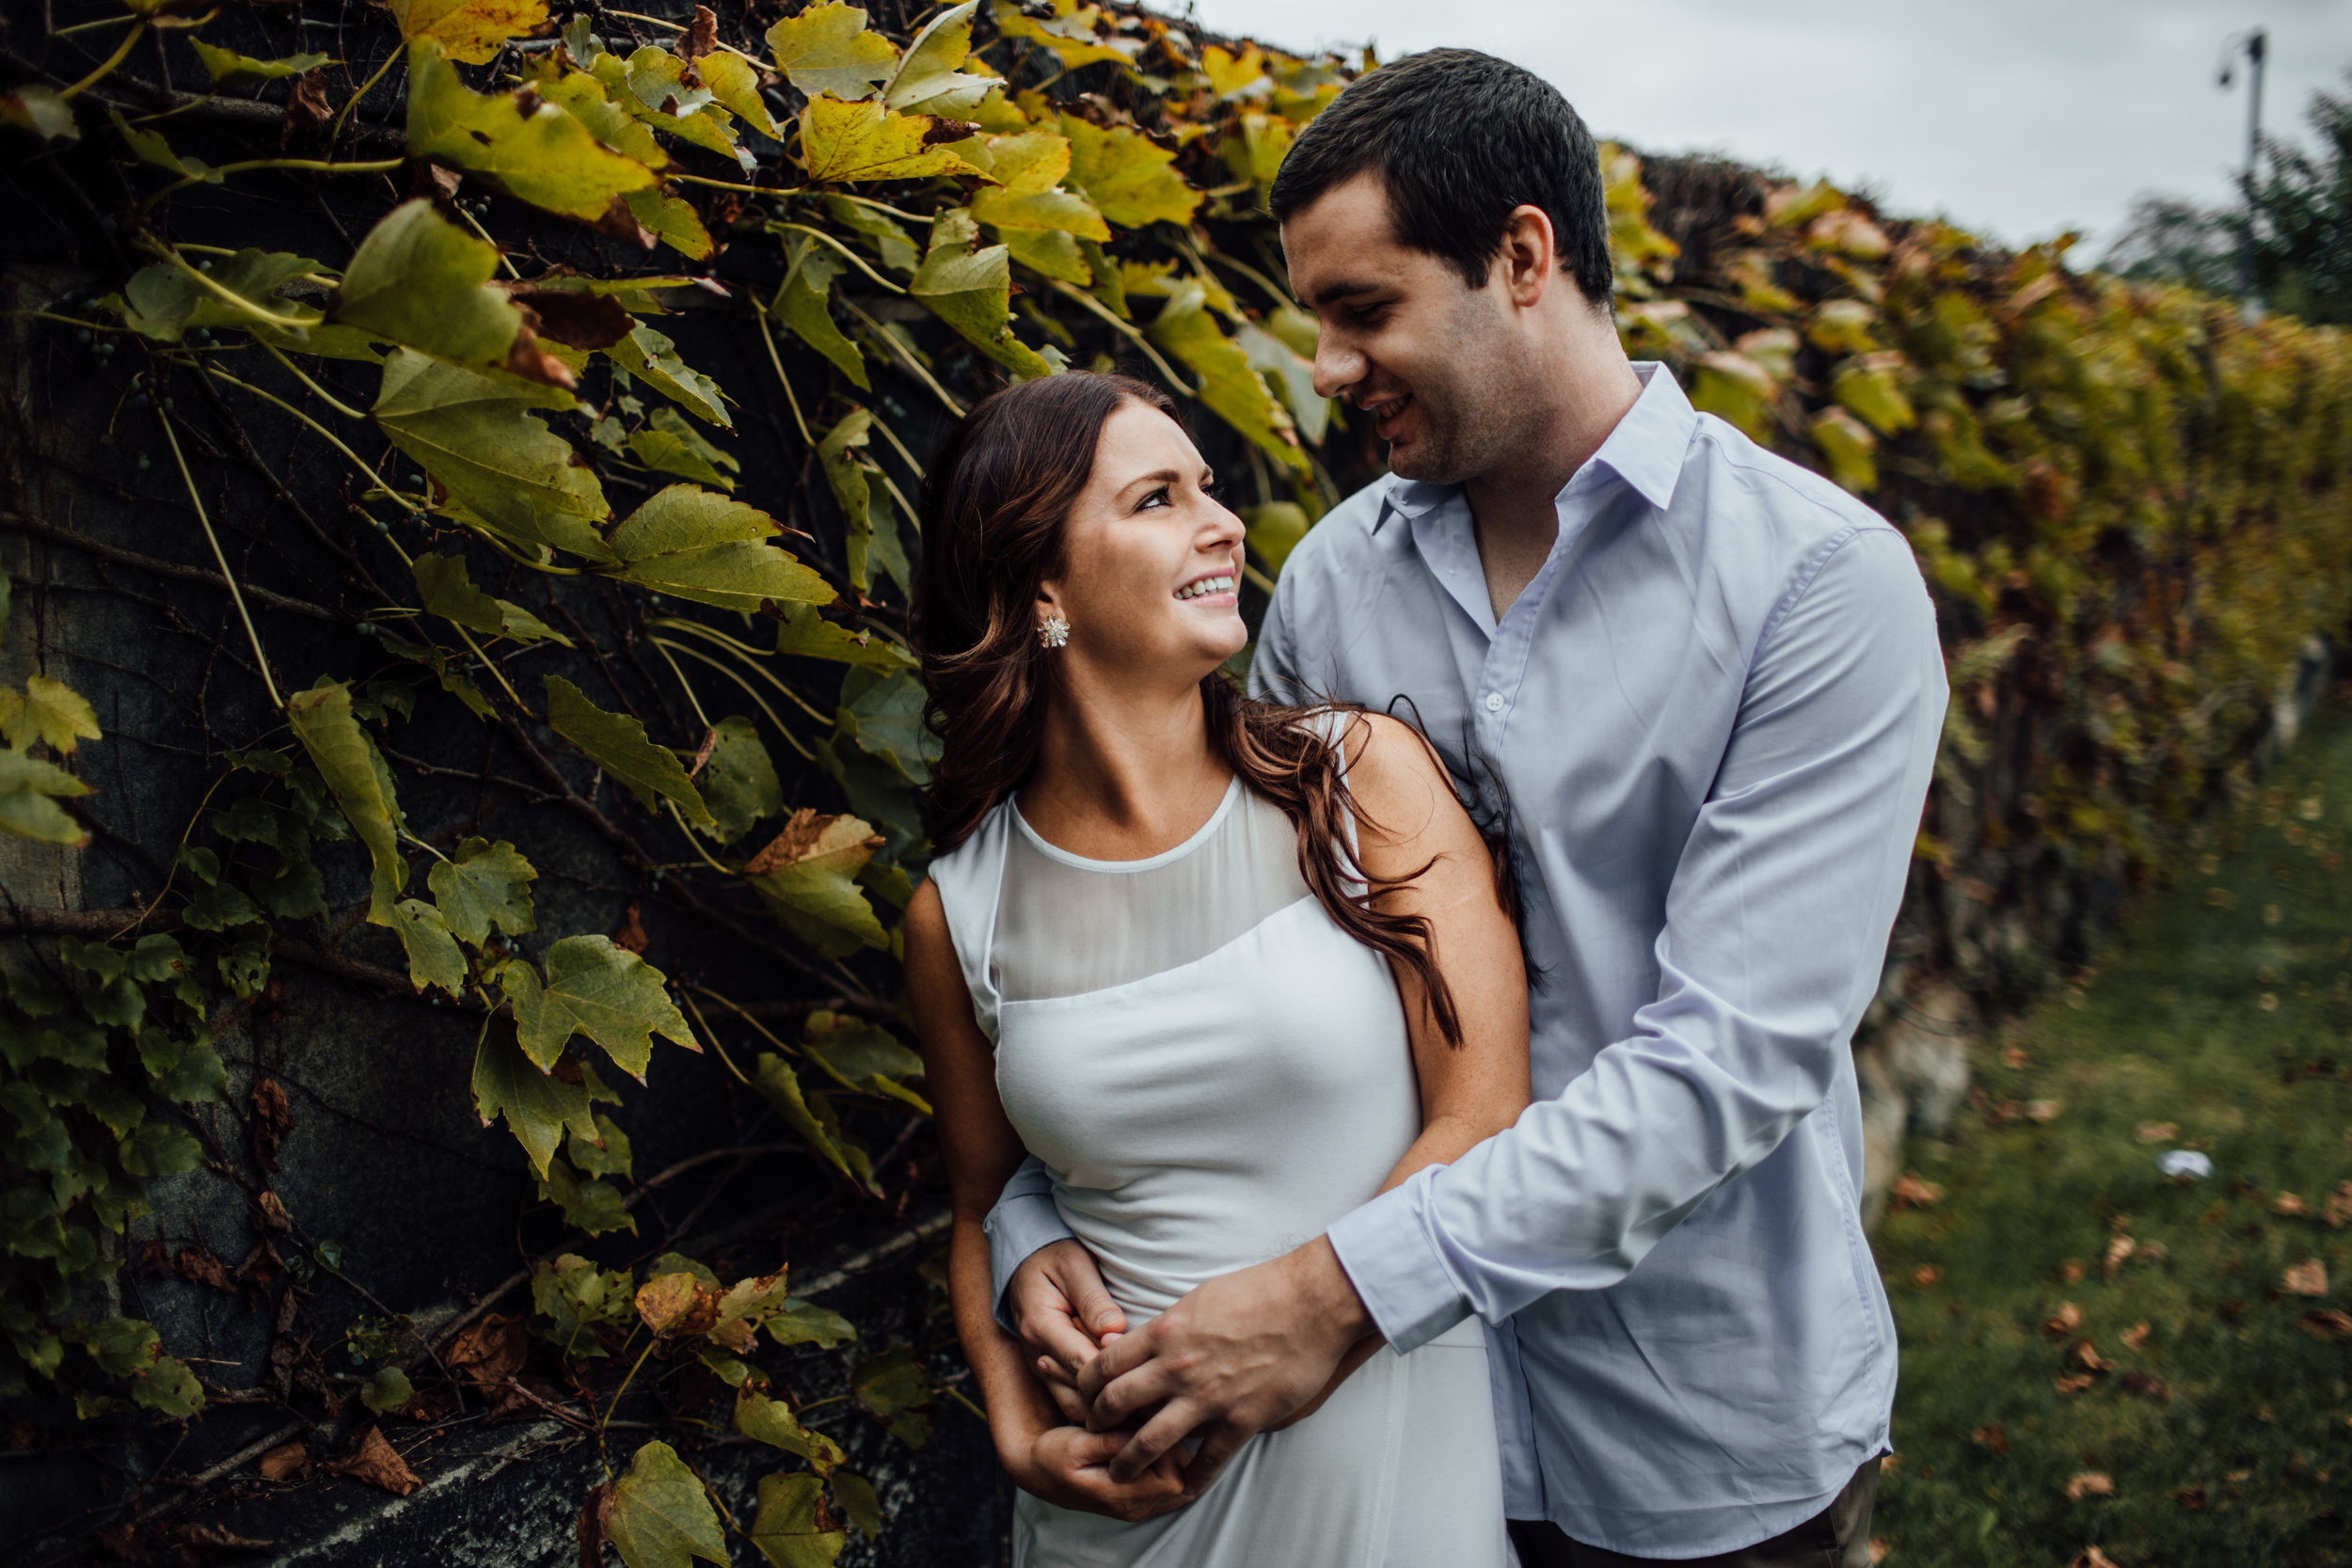 BRITTANYandKEVIN-Engagement2015 (80 of 115).jpg